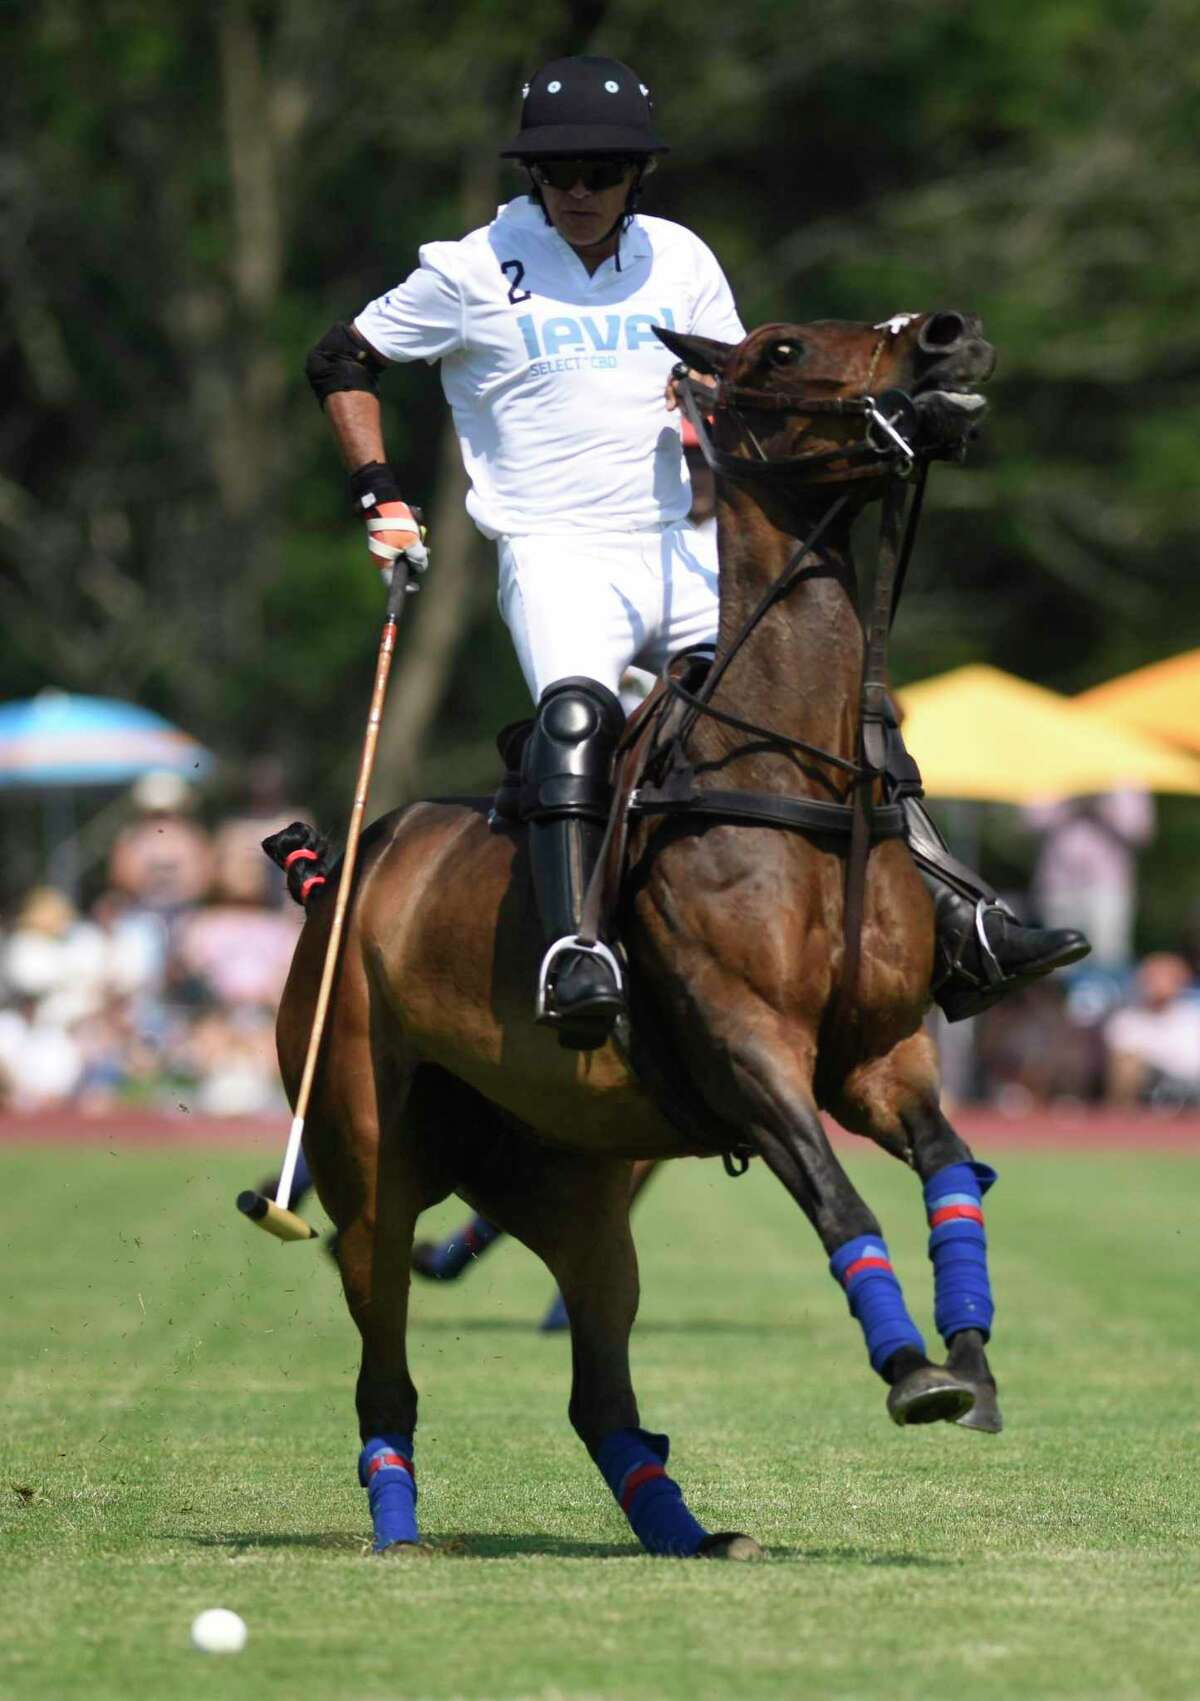 Photos from the season-opening match at the Greenwich Polo Club in Greenwich, Conn. Sunday, June 6, 2021. Level Select CBD played Palm Beach Equine in the East Coast Bronze Cup 2021 match before a sold out crowd.